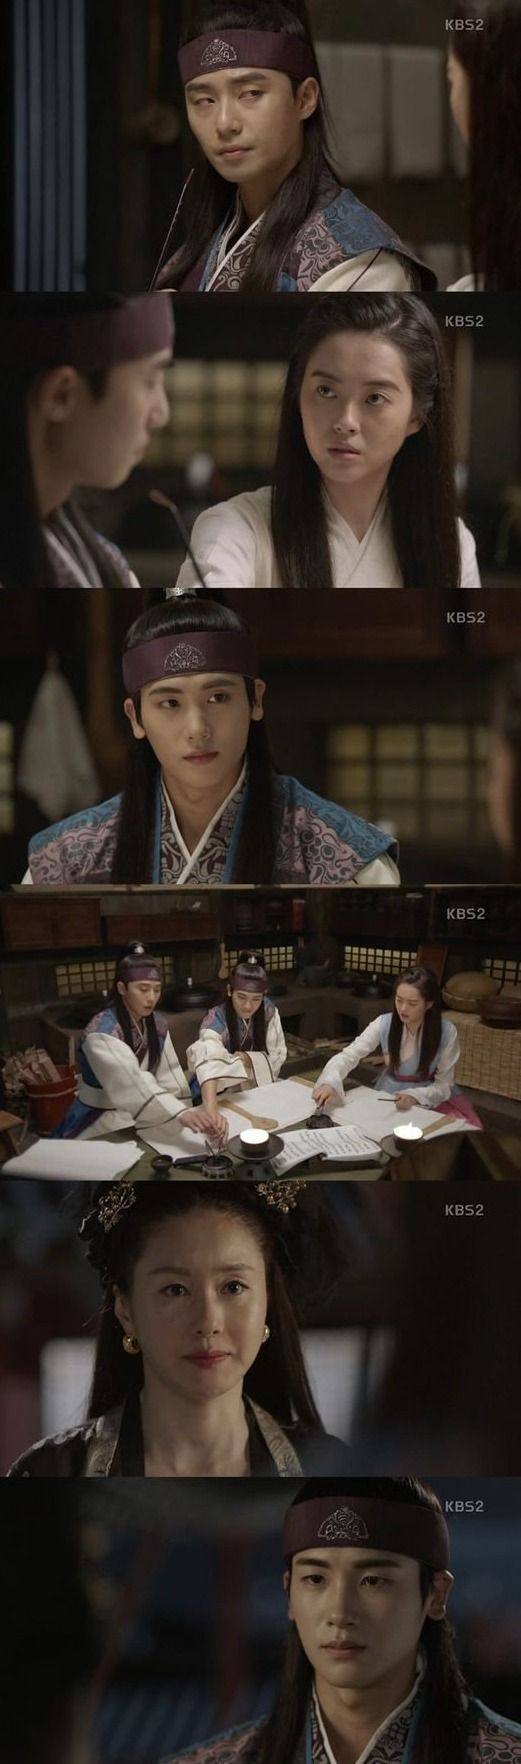 [Spoiler] Added episode 6 captures for the #kdrama 'Hwarang'